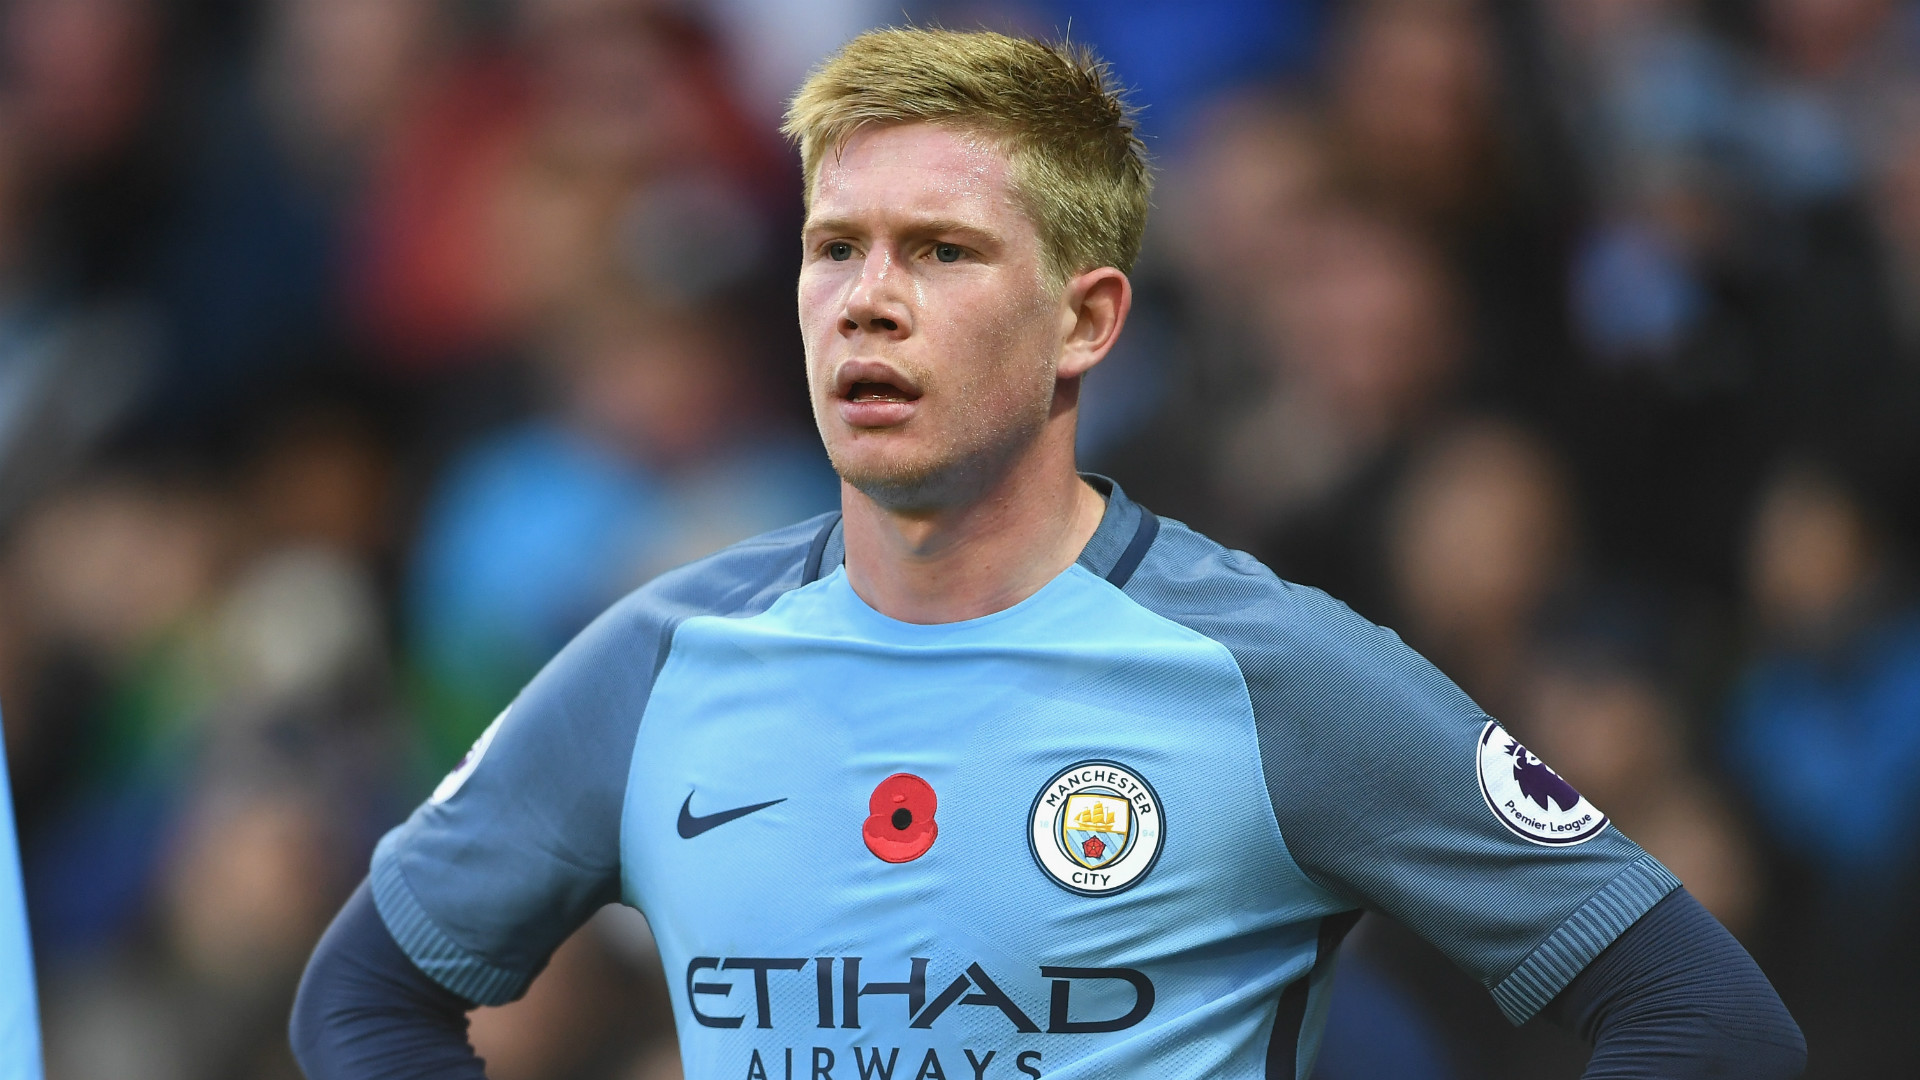 De Bruyne wanted open training at Chelsea to prove Mourinho criticism wrong